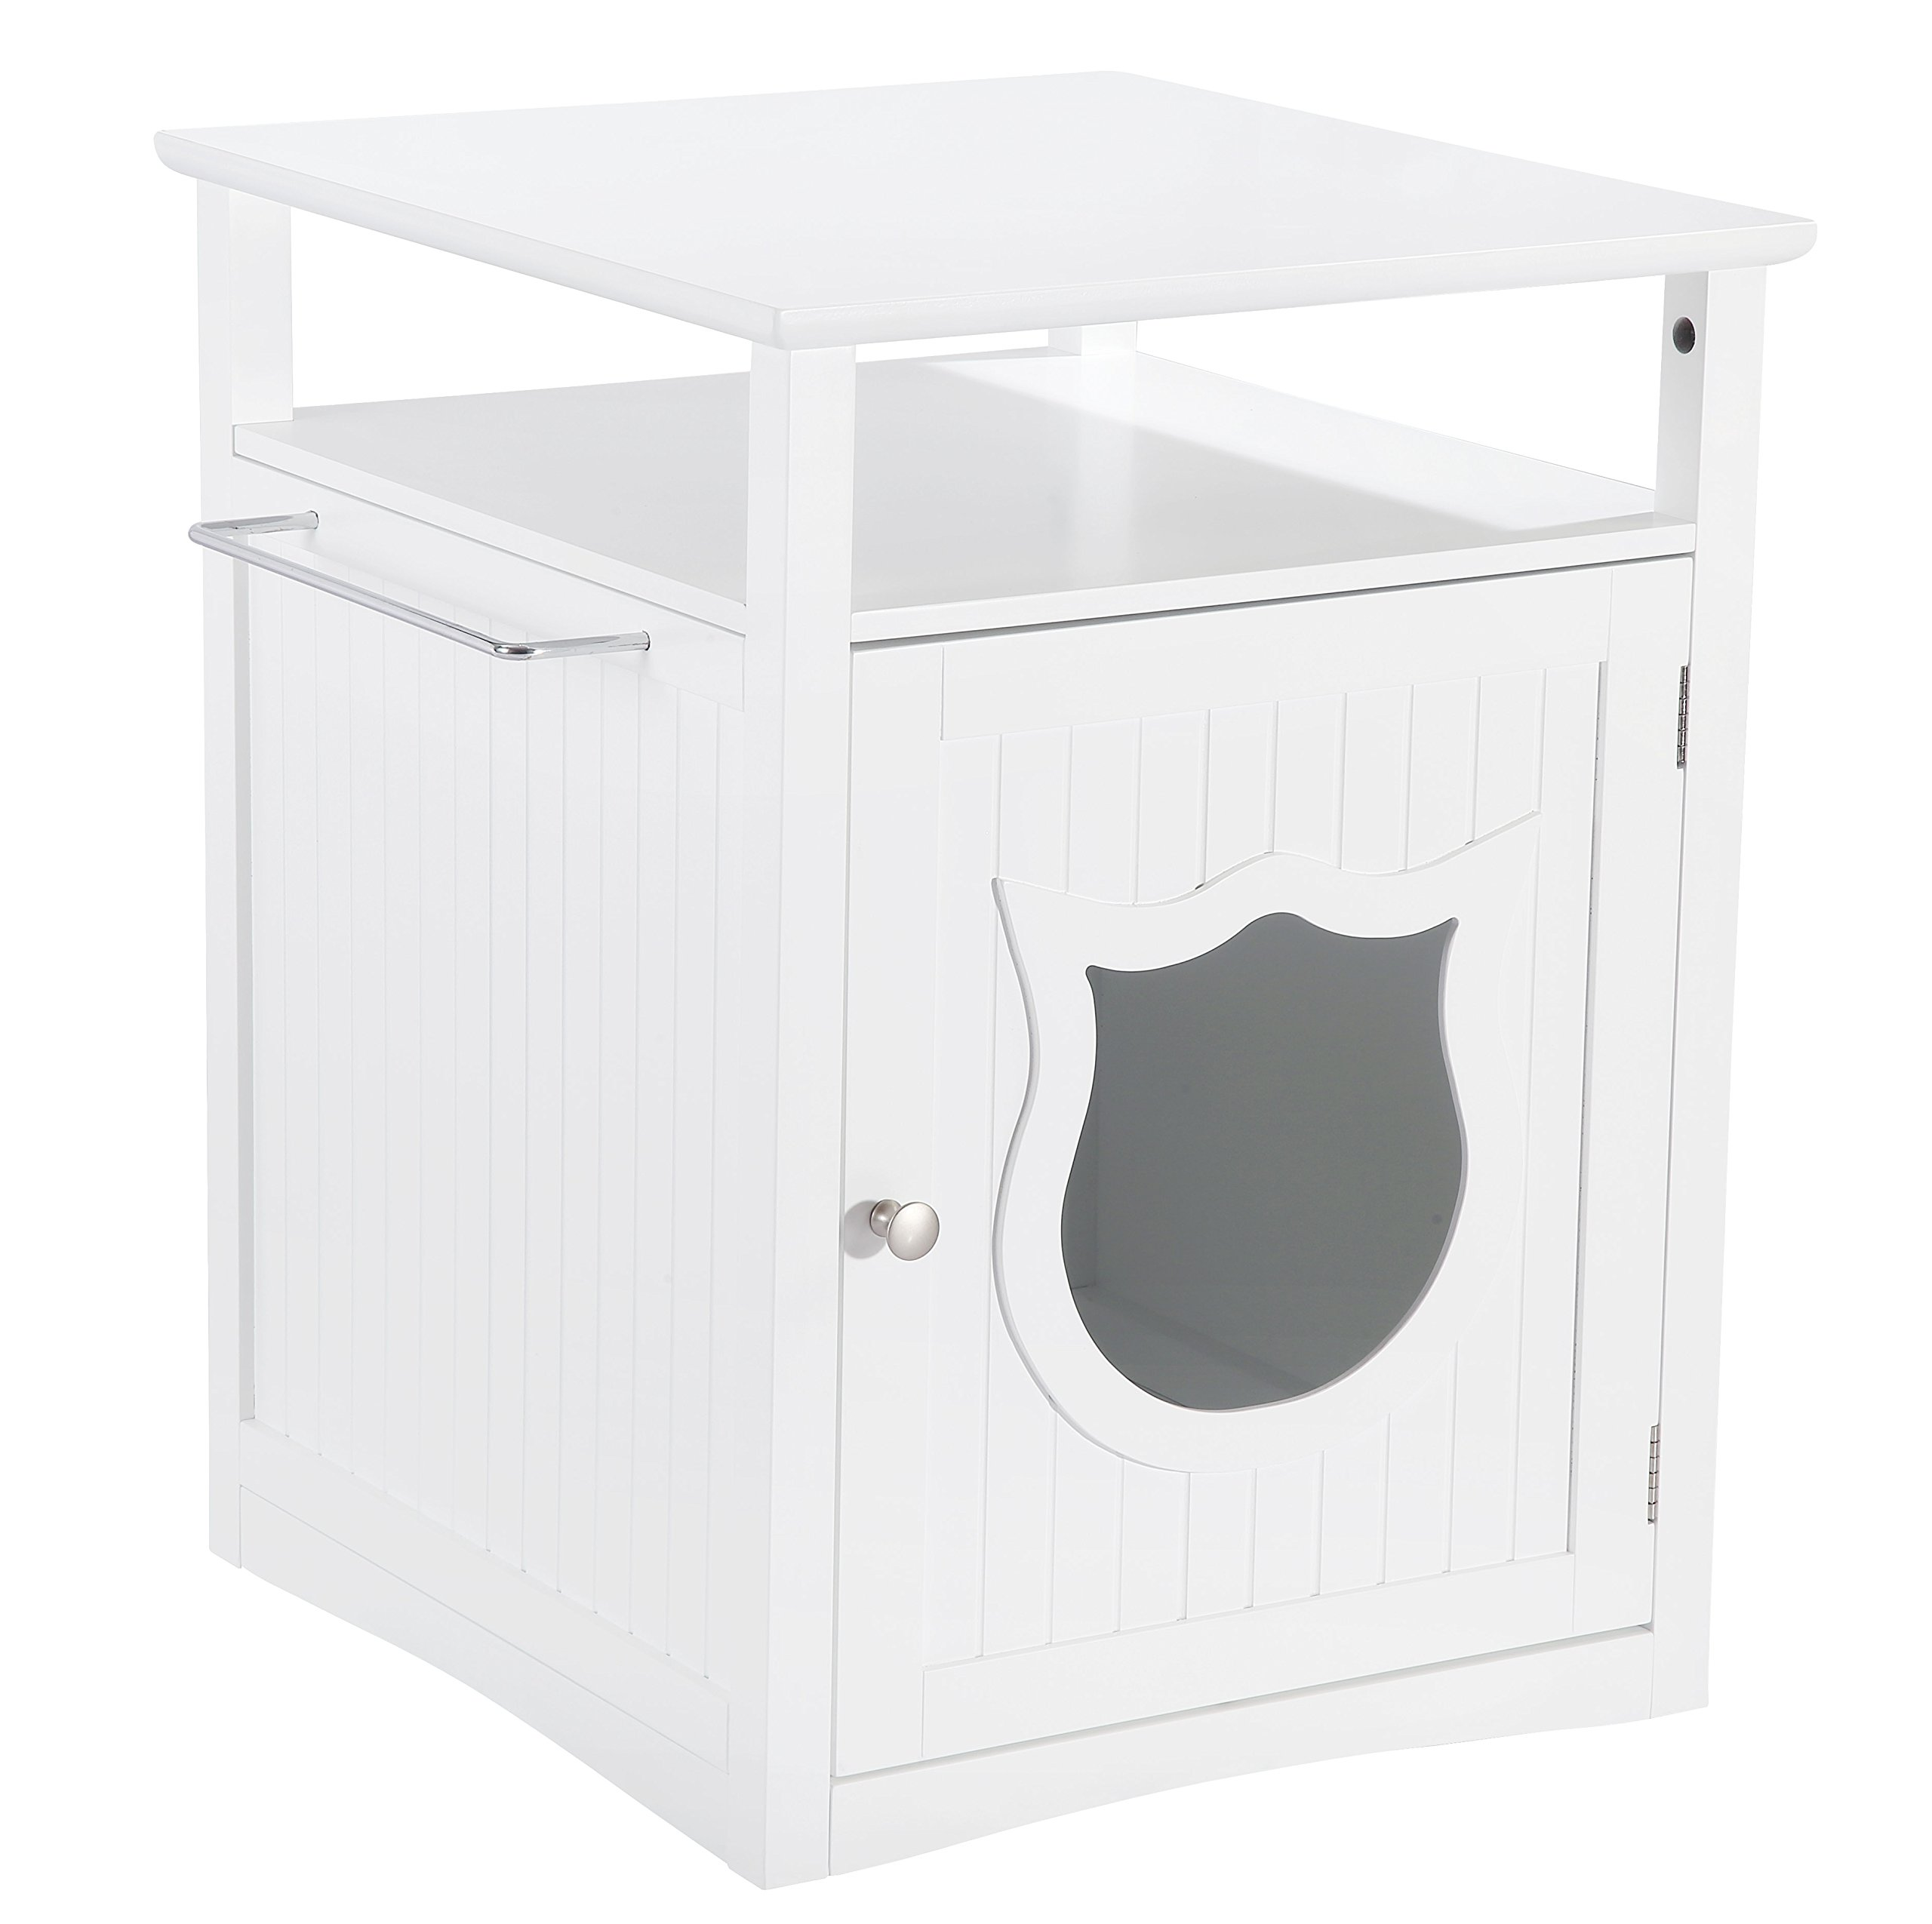 Pet Hup Hup Kitty Cat Thunder Box Pet House and Litter Box Comfort Room with Night Stand, White